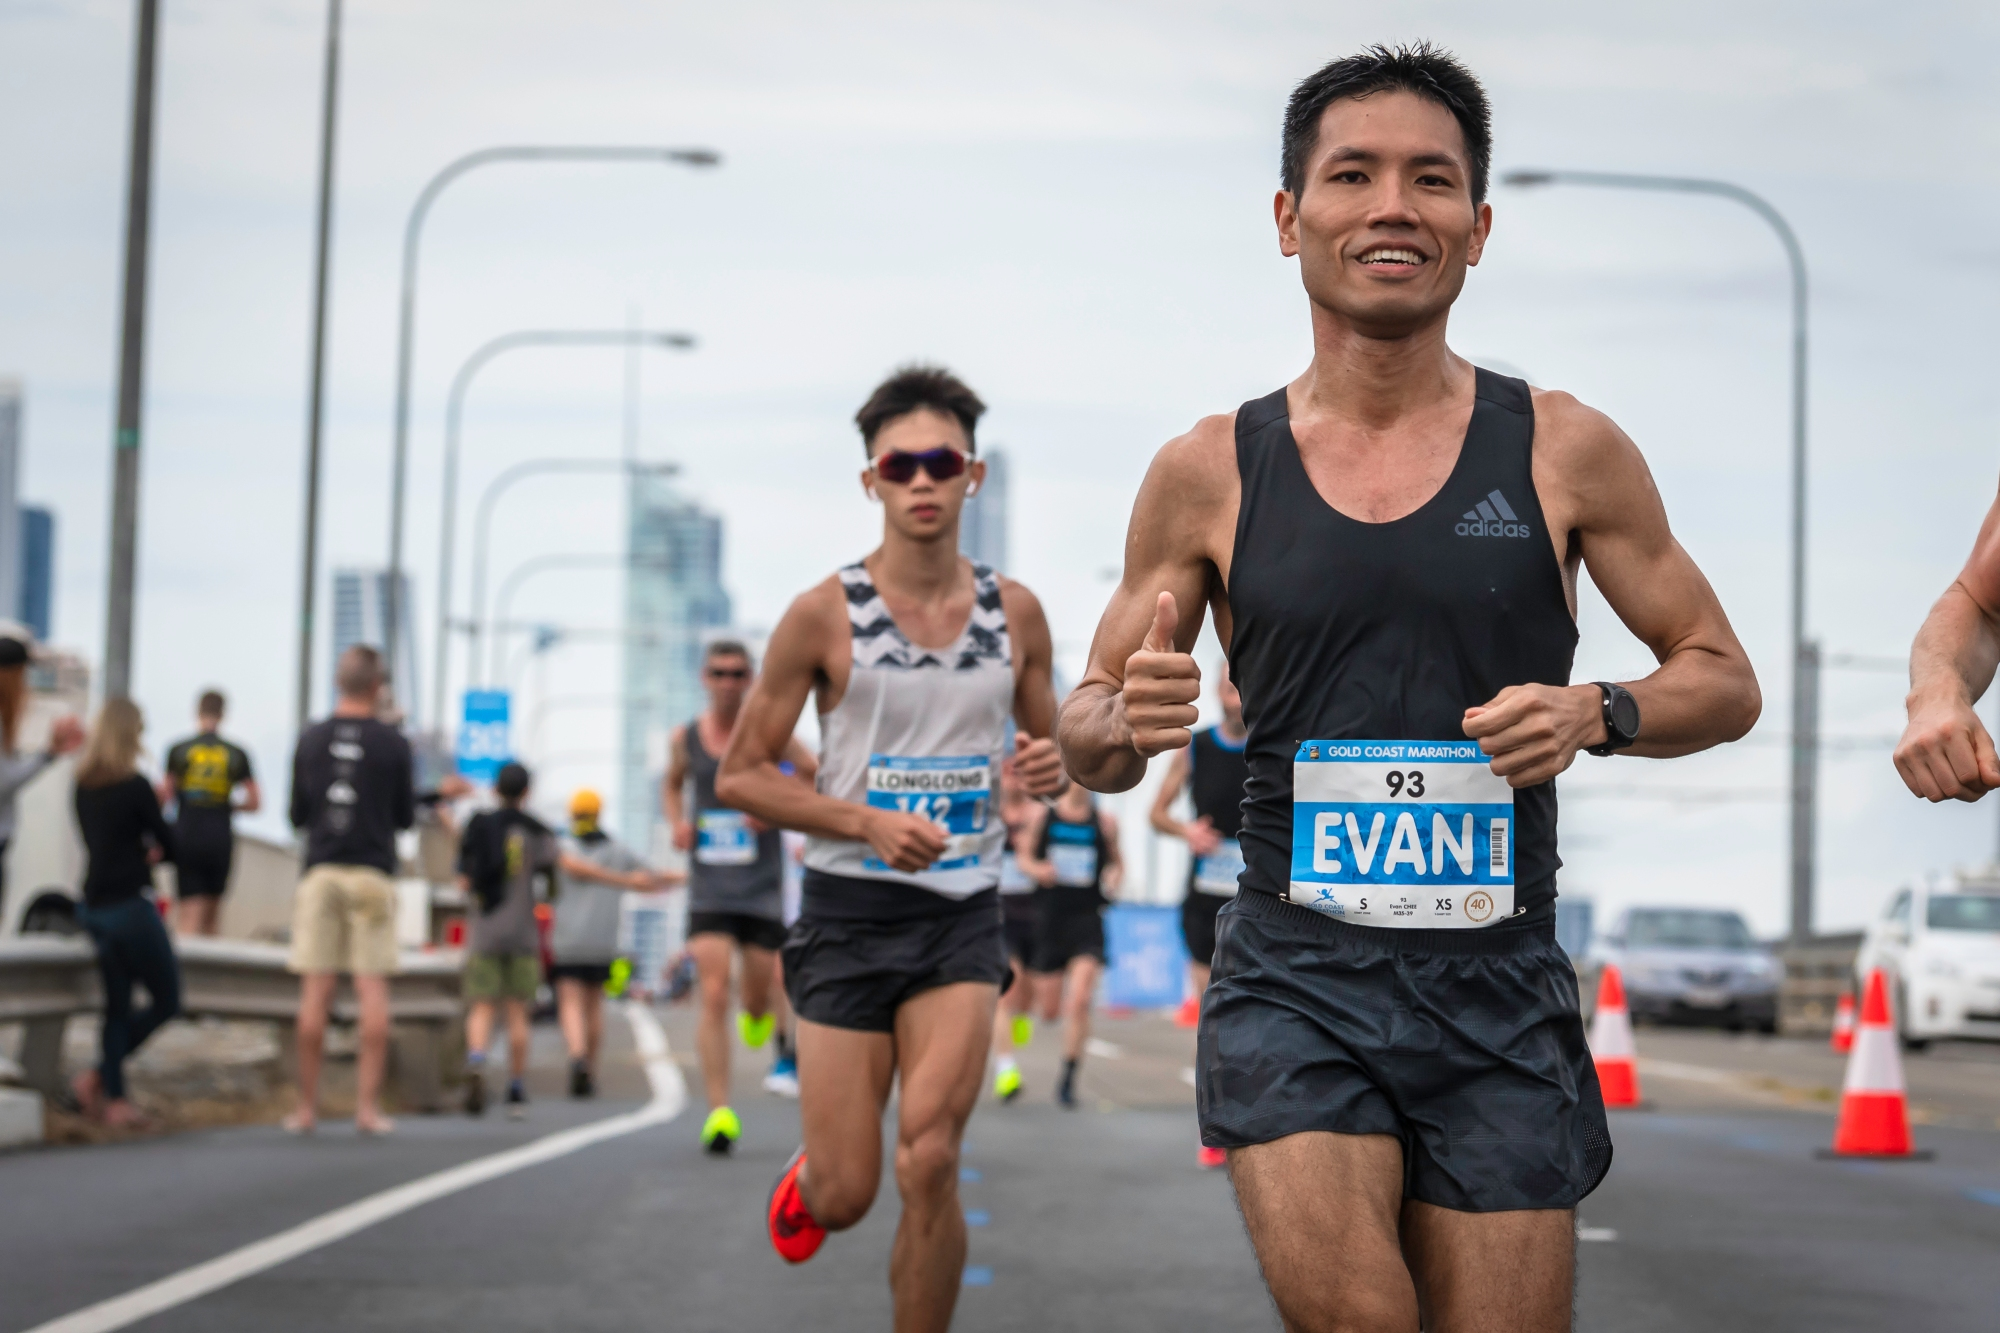 Evan during his Gold Coast Marathon in July 2018. Photo credits: ONEATHLETE / CHEW JEE KENG